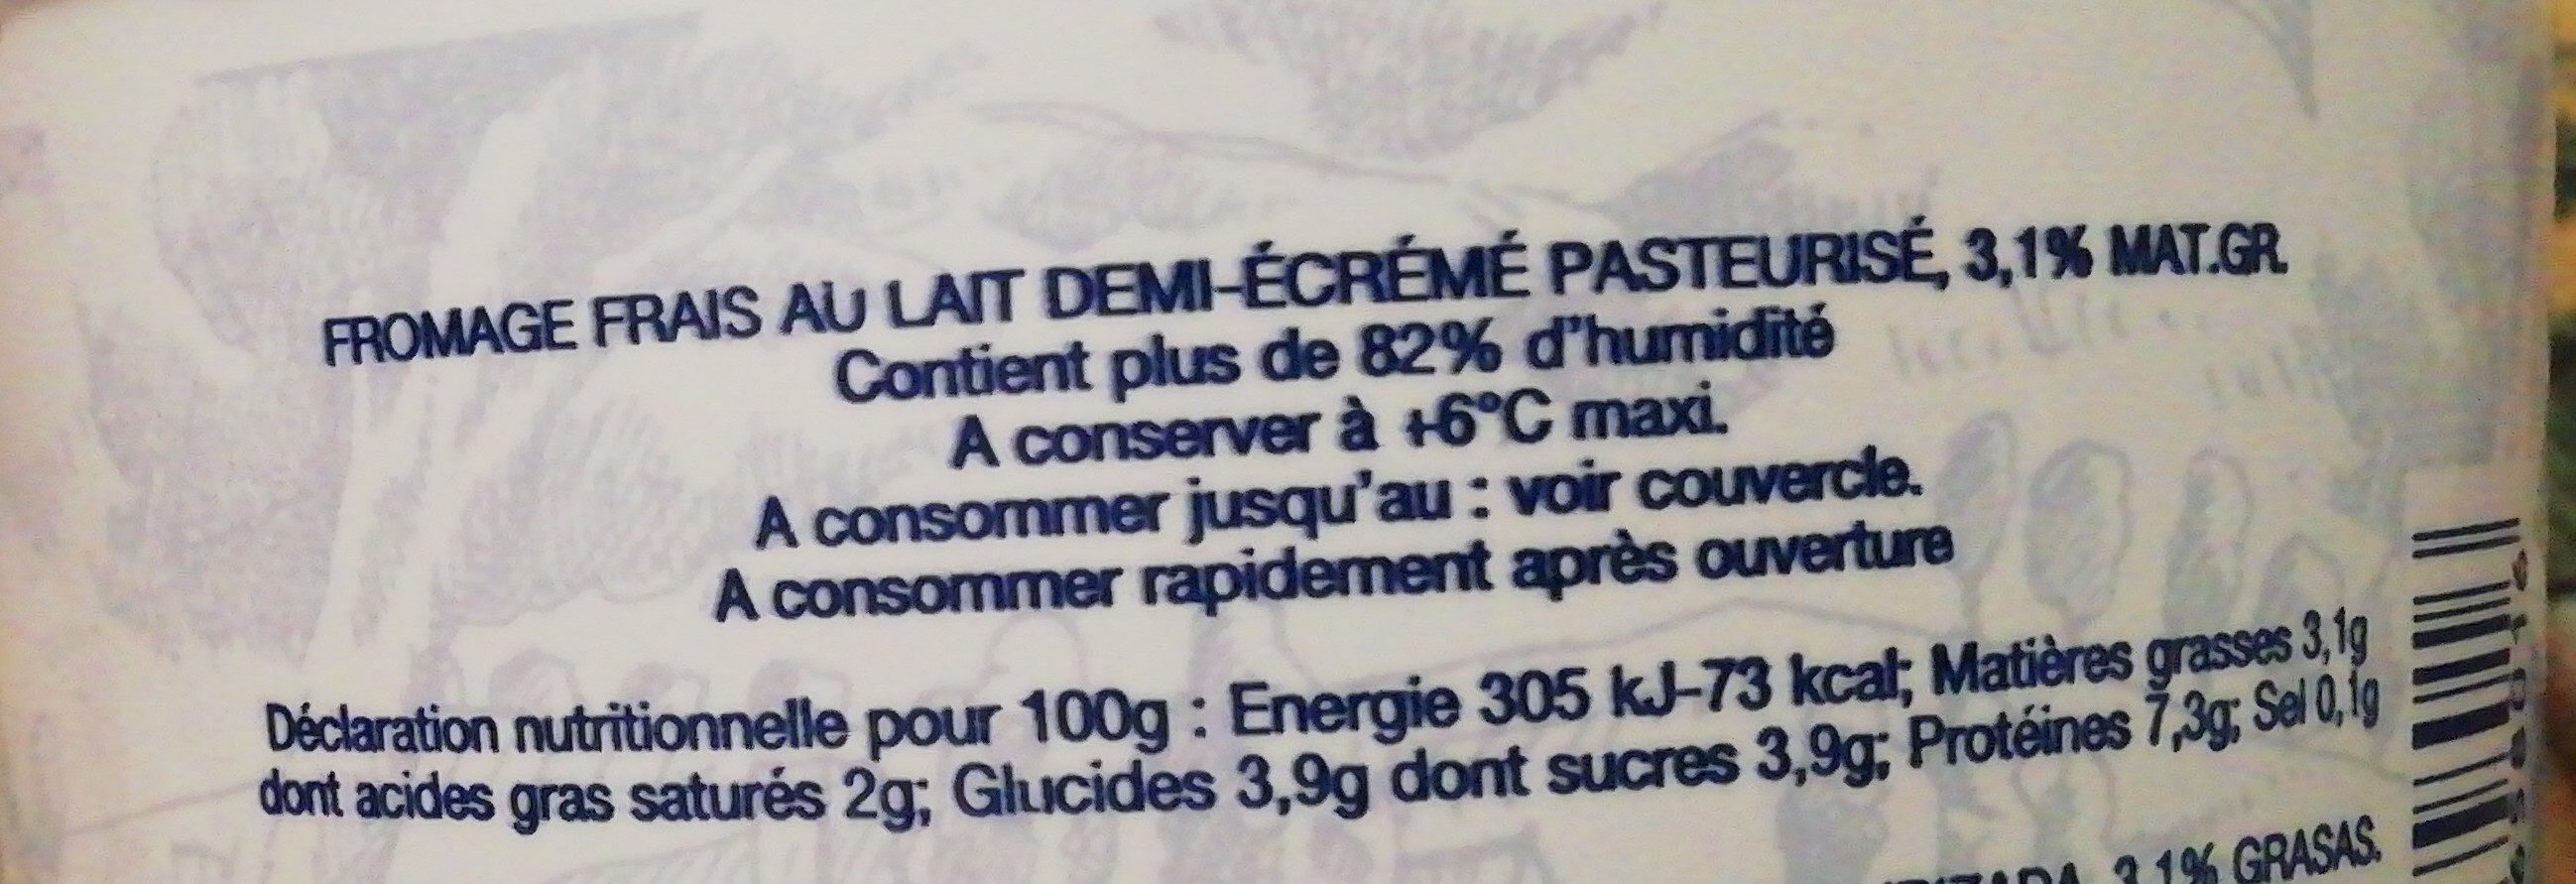 Fromage frais onctueux - Ingredients